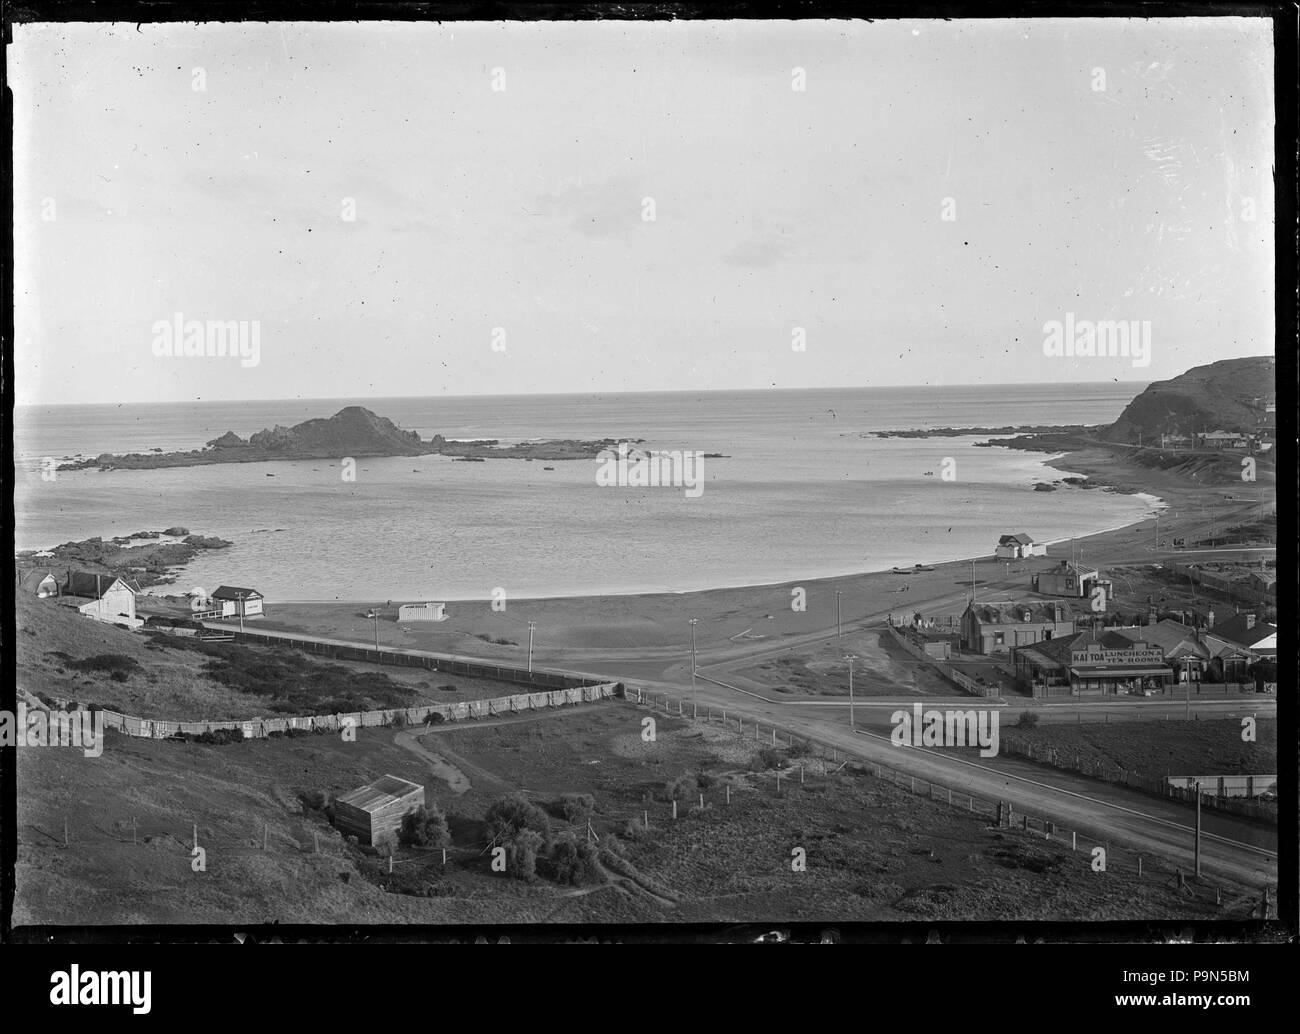 324 View overlooking Island Bay, with the Kai Toa Luncheon and Tea Rooms right foreground. ATLIB 286535 - Stock Image